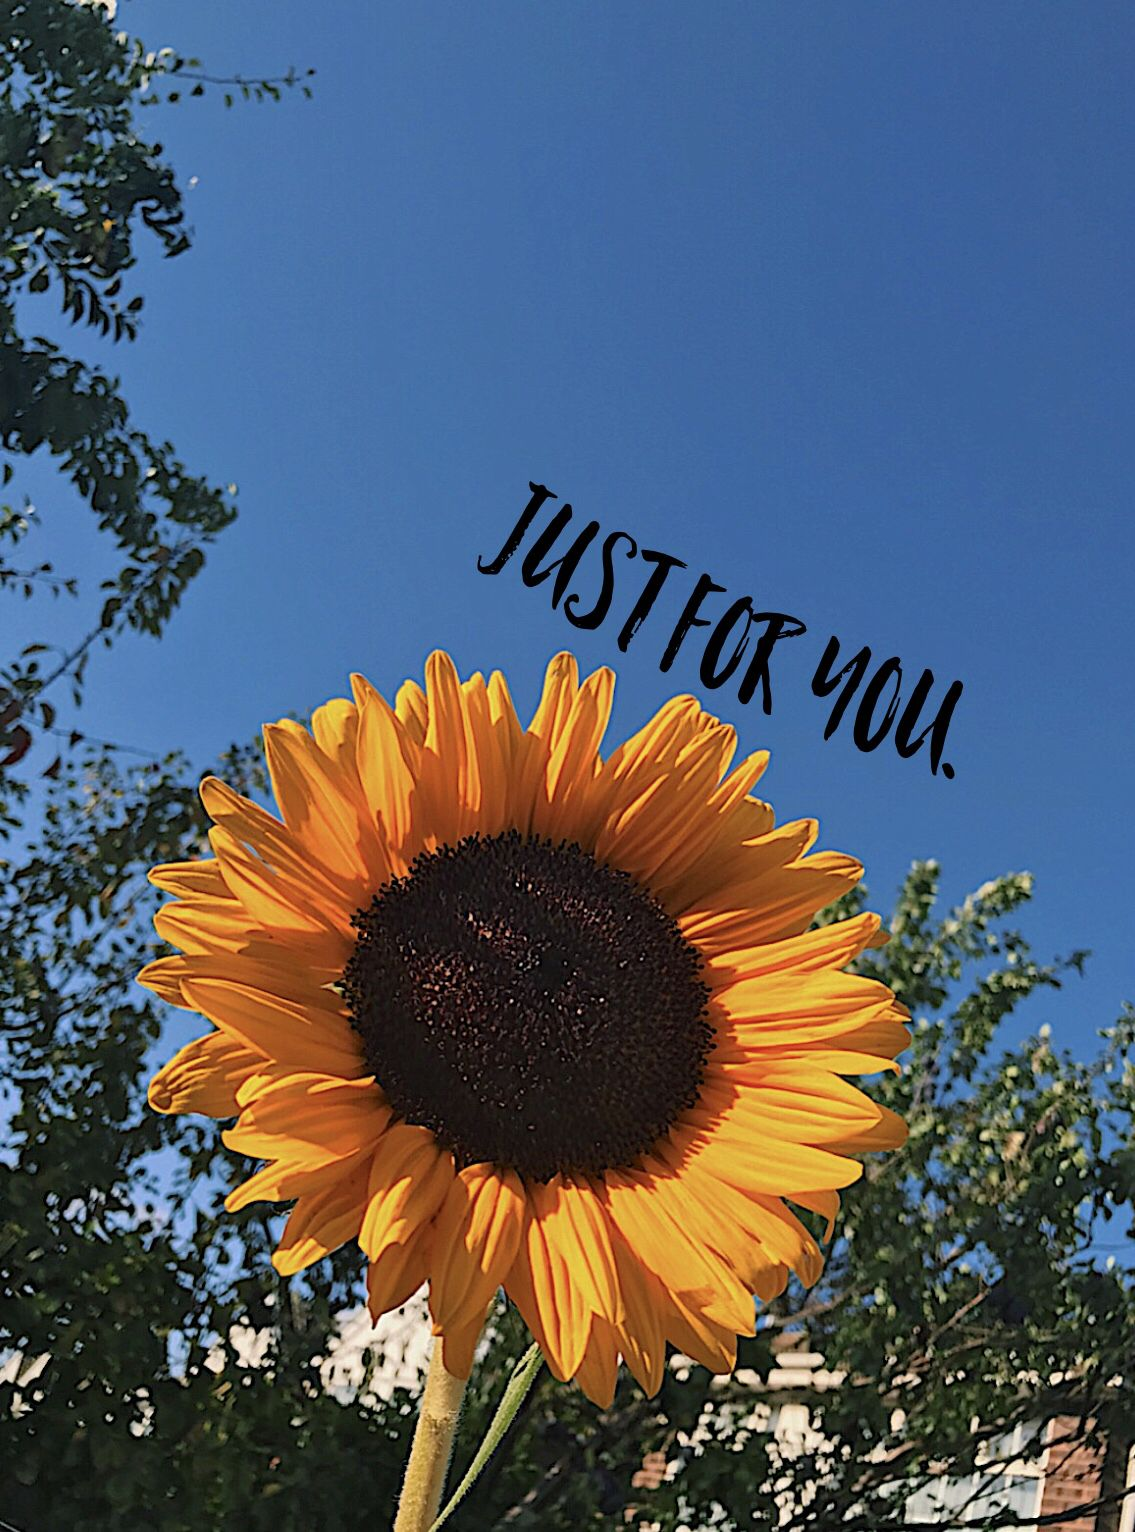 quotes aesthetic flowers sunflowers Sunflower